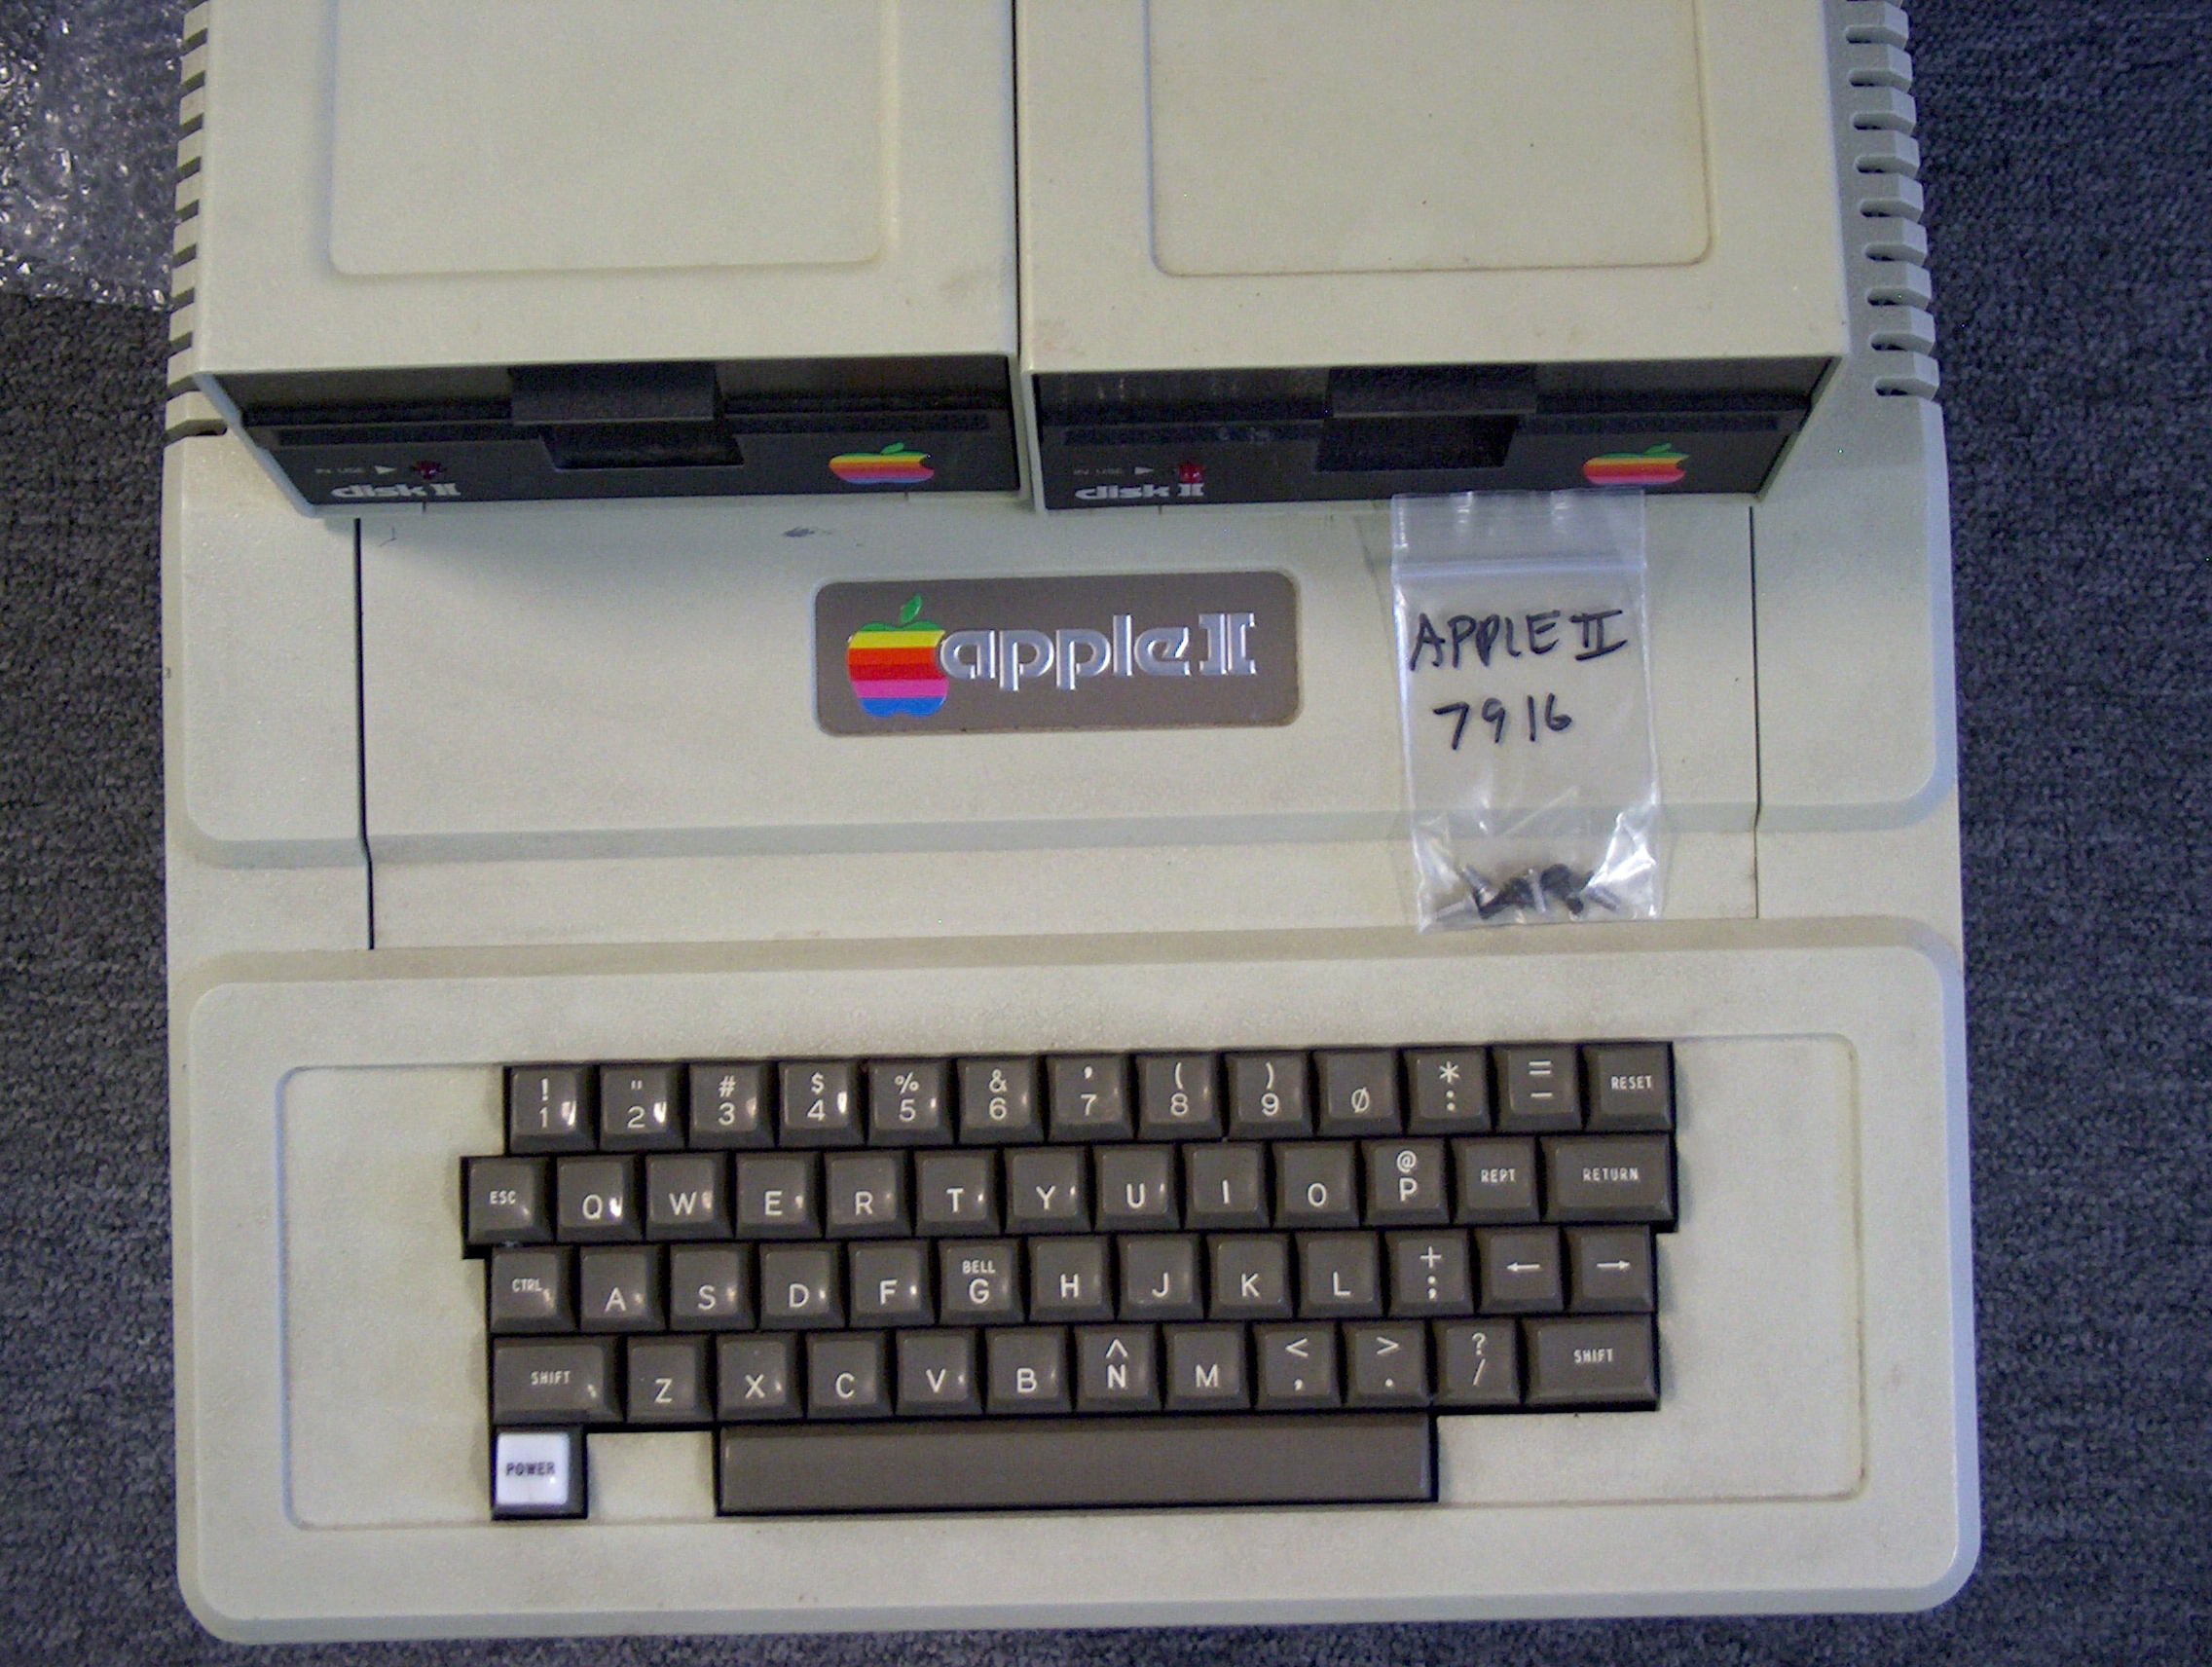 Apple ][ and Apple ][+ Seial Number Stickers